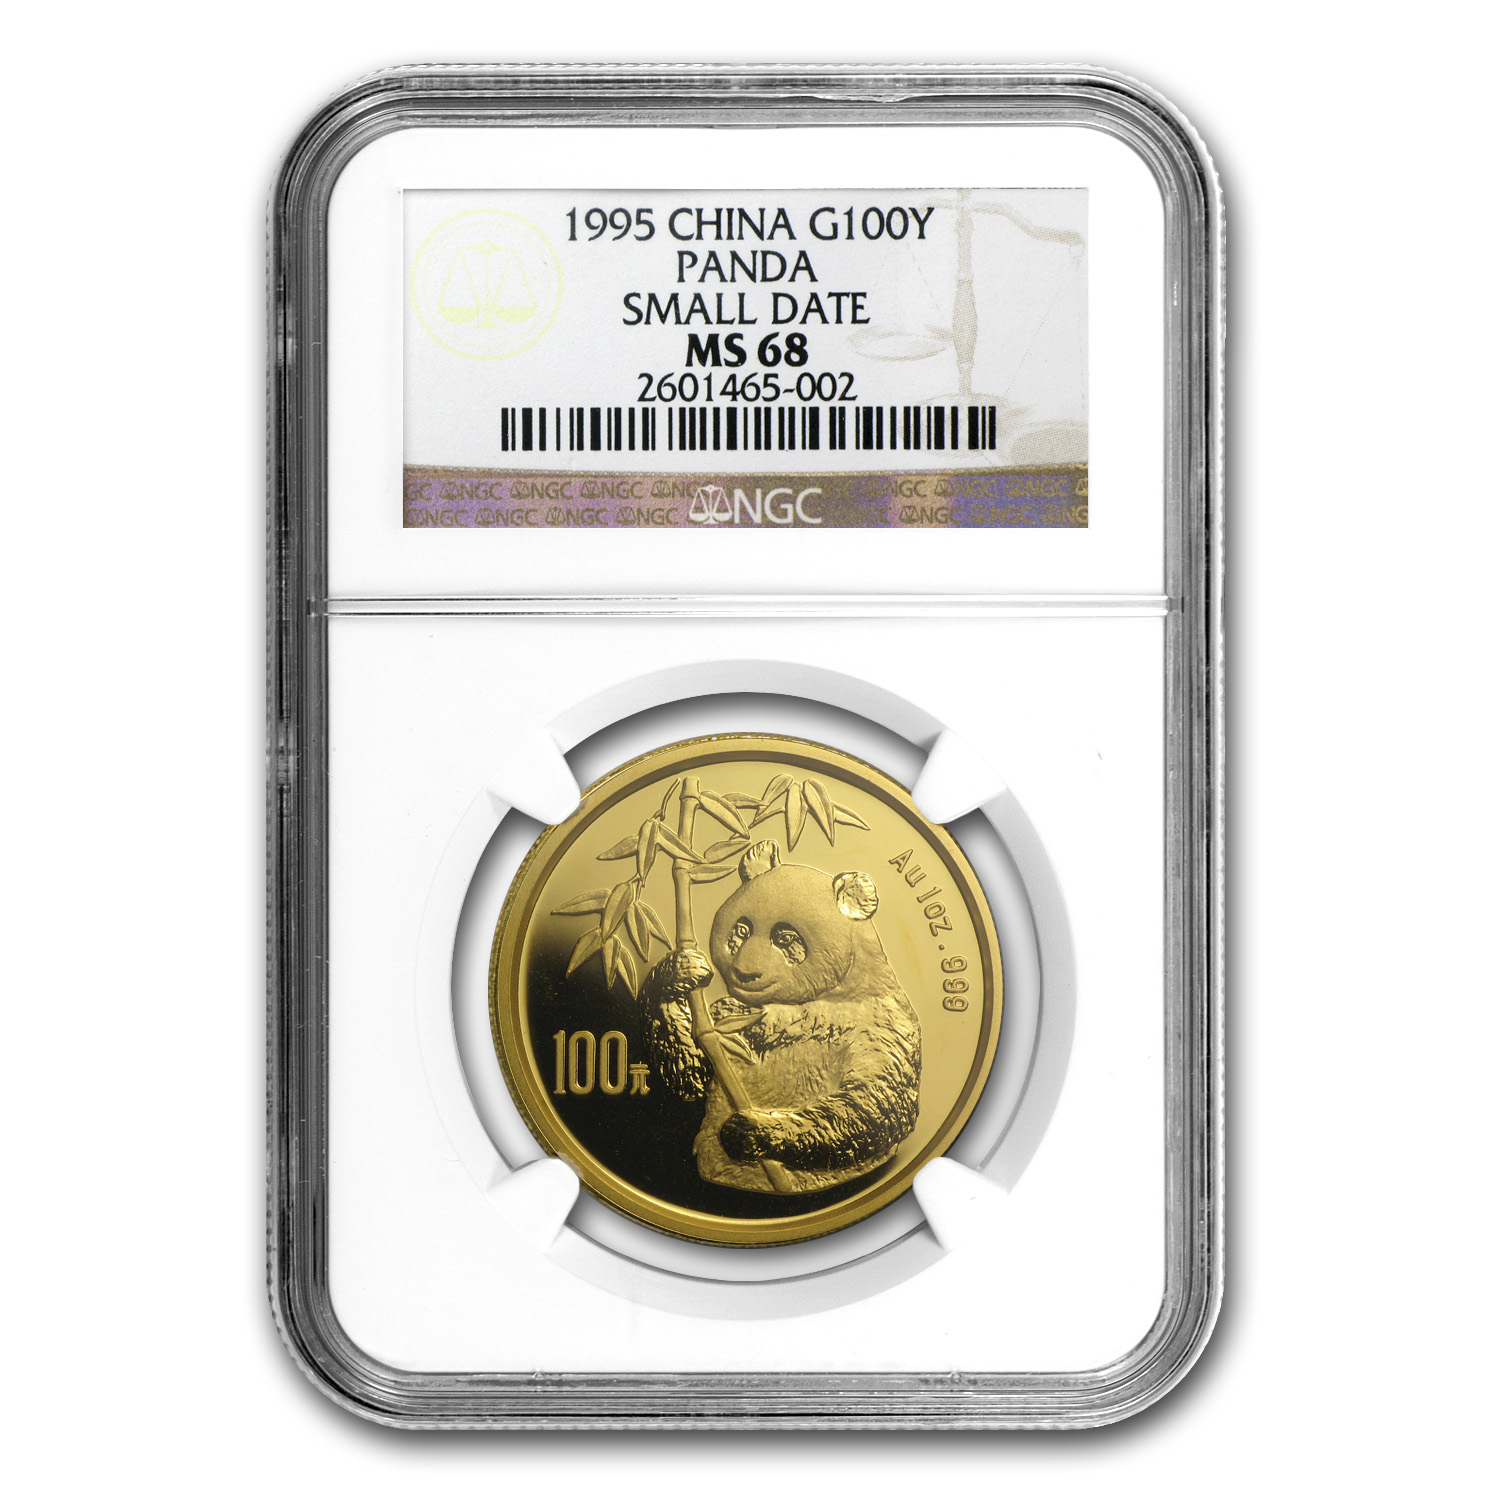 1995 China 1 oz Gold Panda Small Date MS-68 NGC